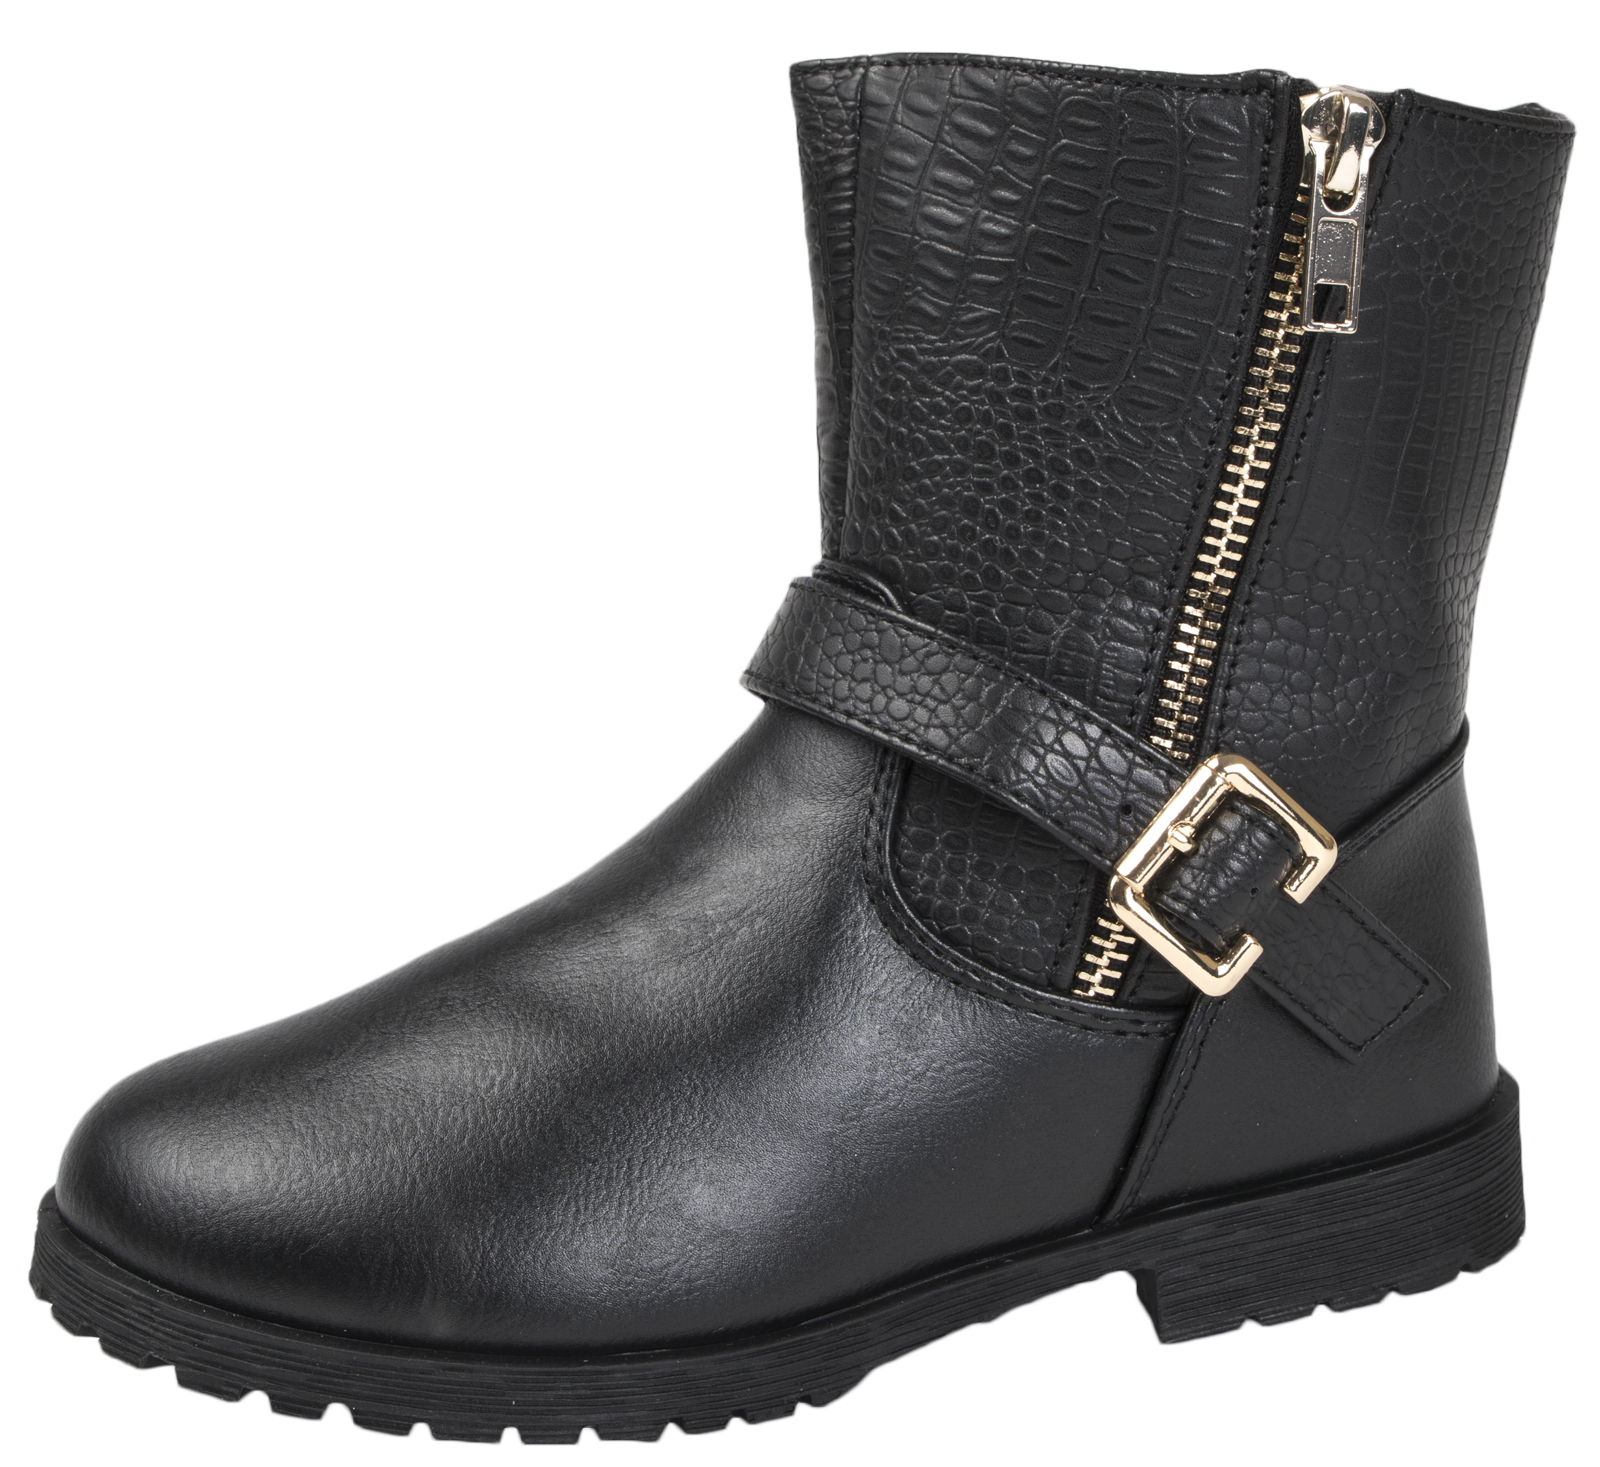 BMS Buckle My Shoe Girls Mid Calf Black Boots Faux Leather School Shoes Size